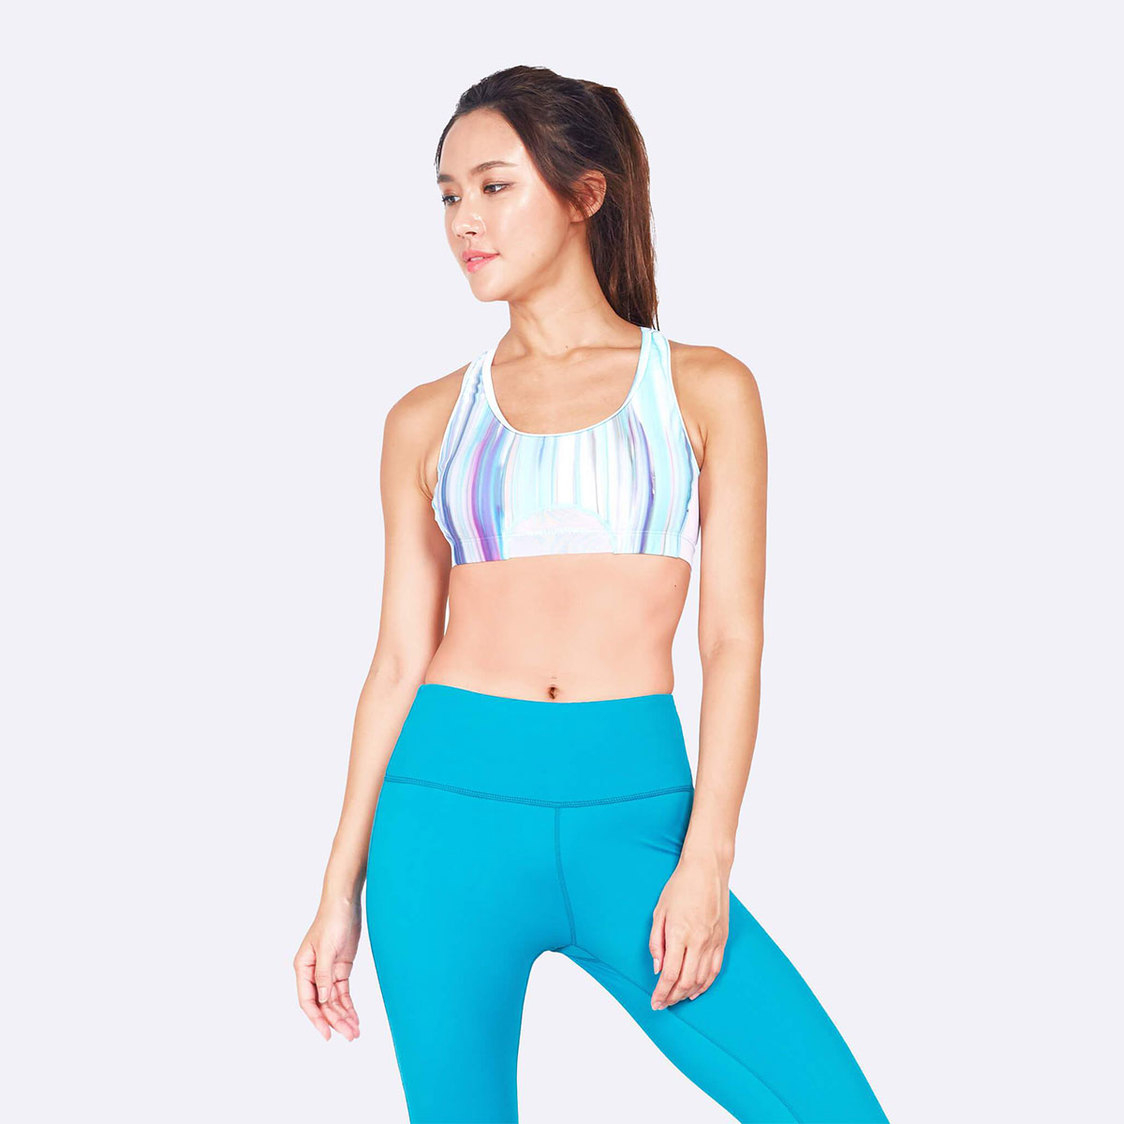 Knockout Racerback Sports Bra in White Iridescence Print